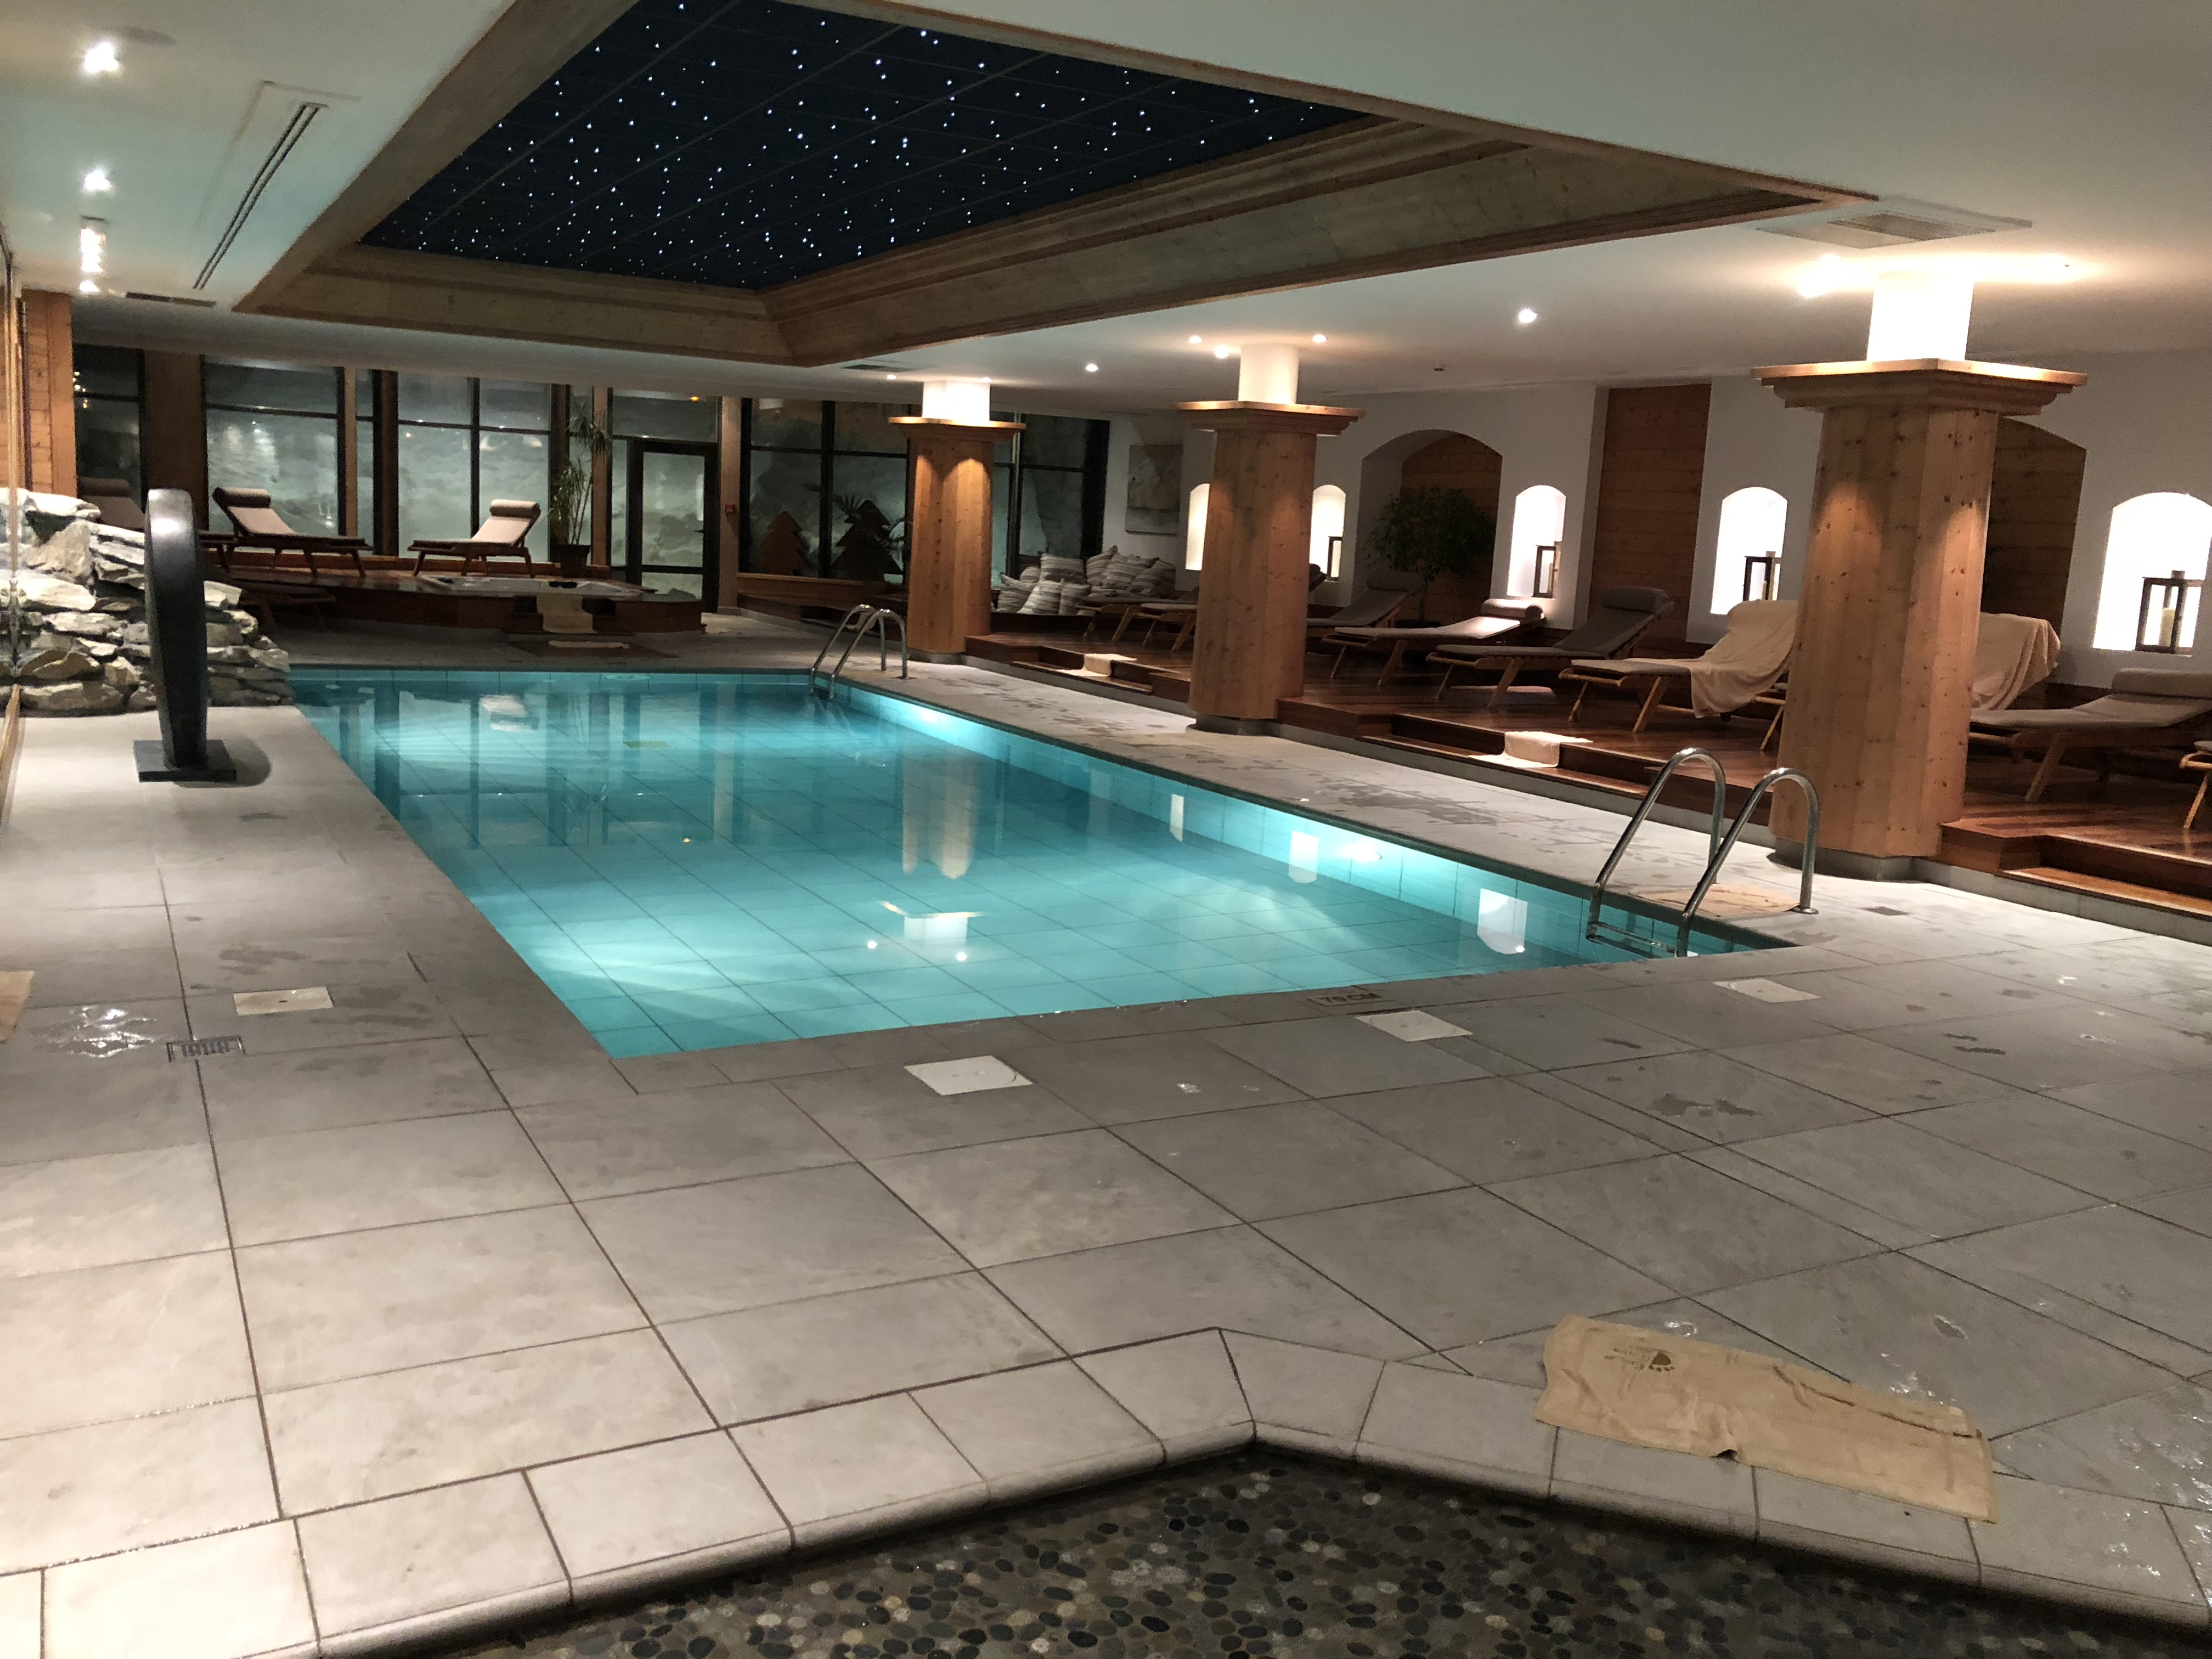 The indoor swimming pool at Les Barmes de l'Ours hotel.